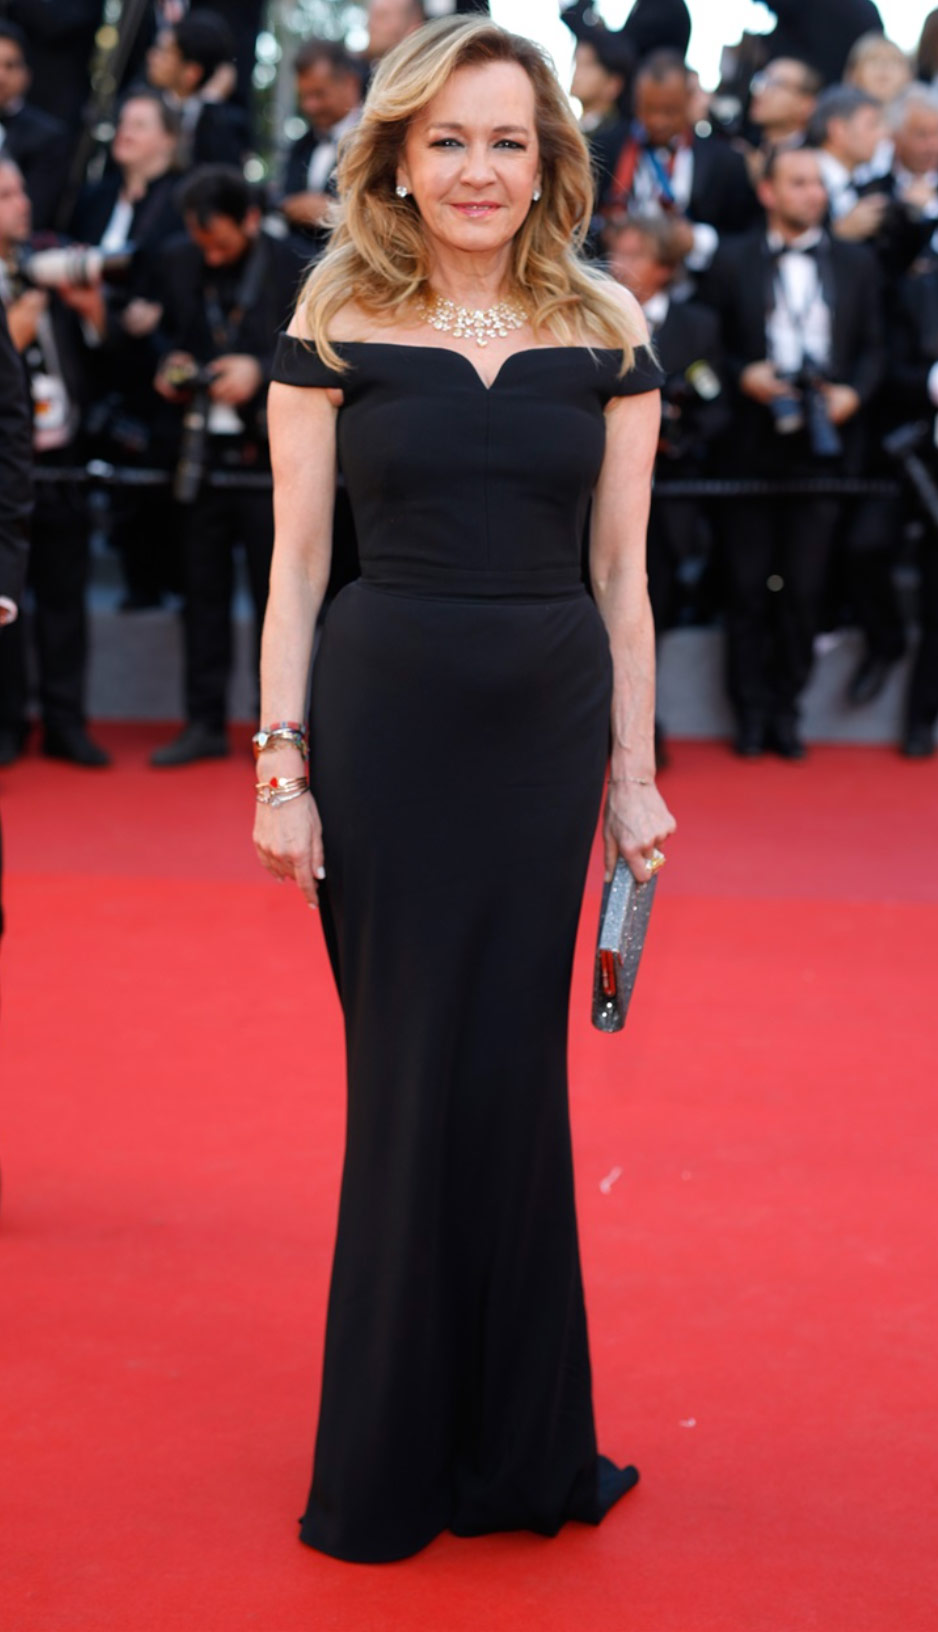 Cannes 2017 - Day 1 - Opening Ceremony - Chopard Co-President & Creative Director Caroline Scheufele